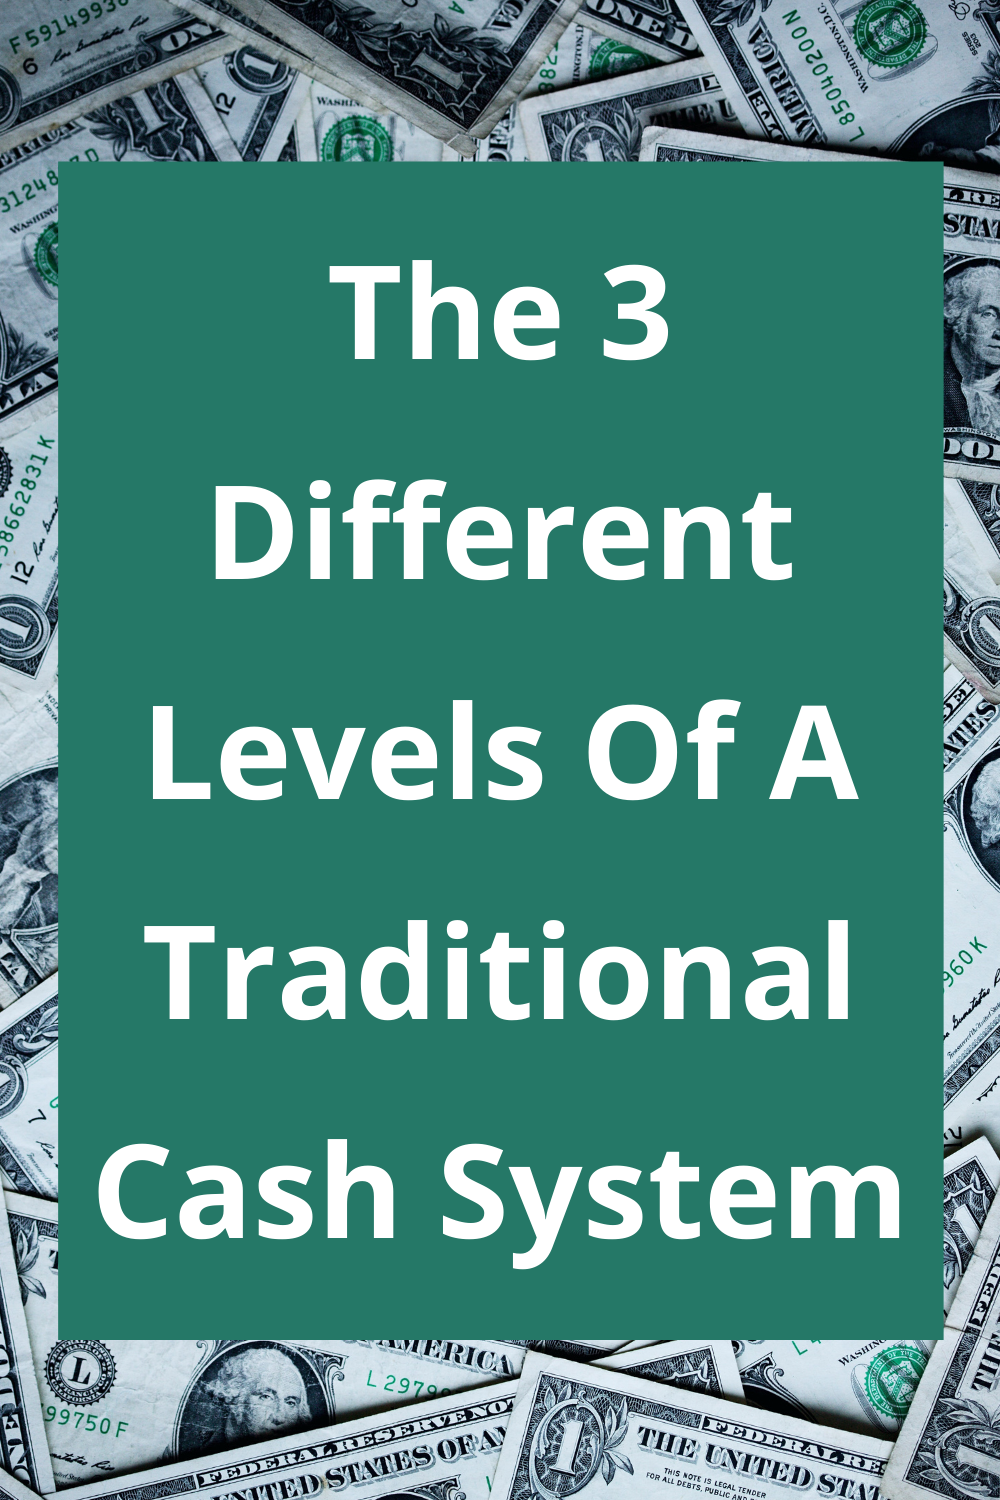 The 3 Different Levels Of A Traditional Cash System